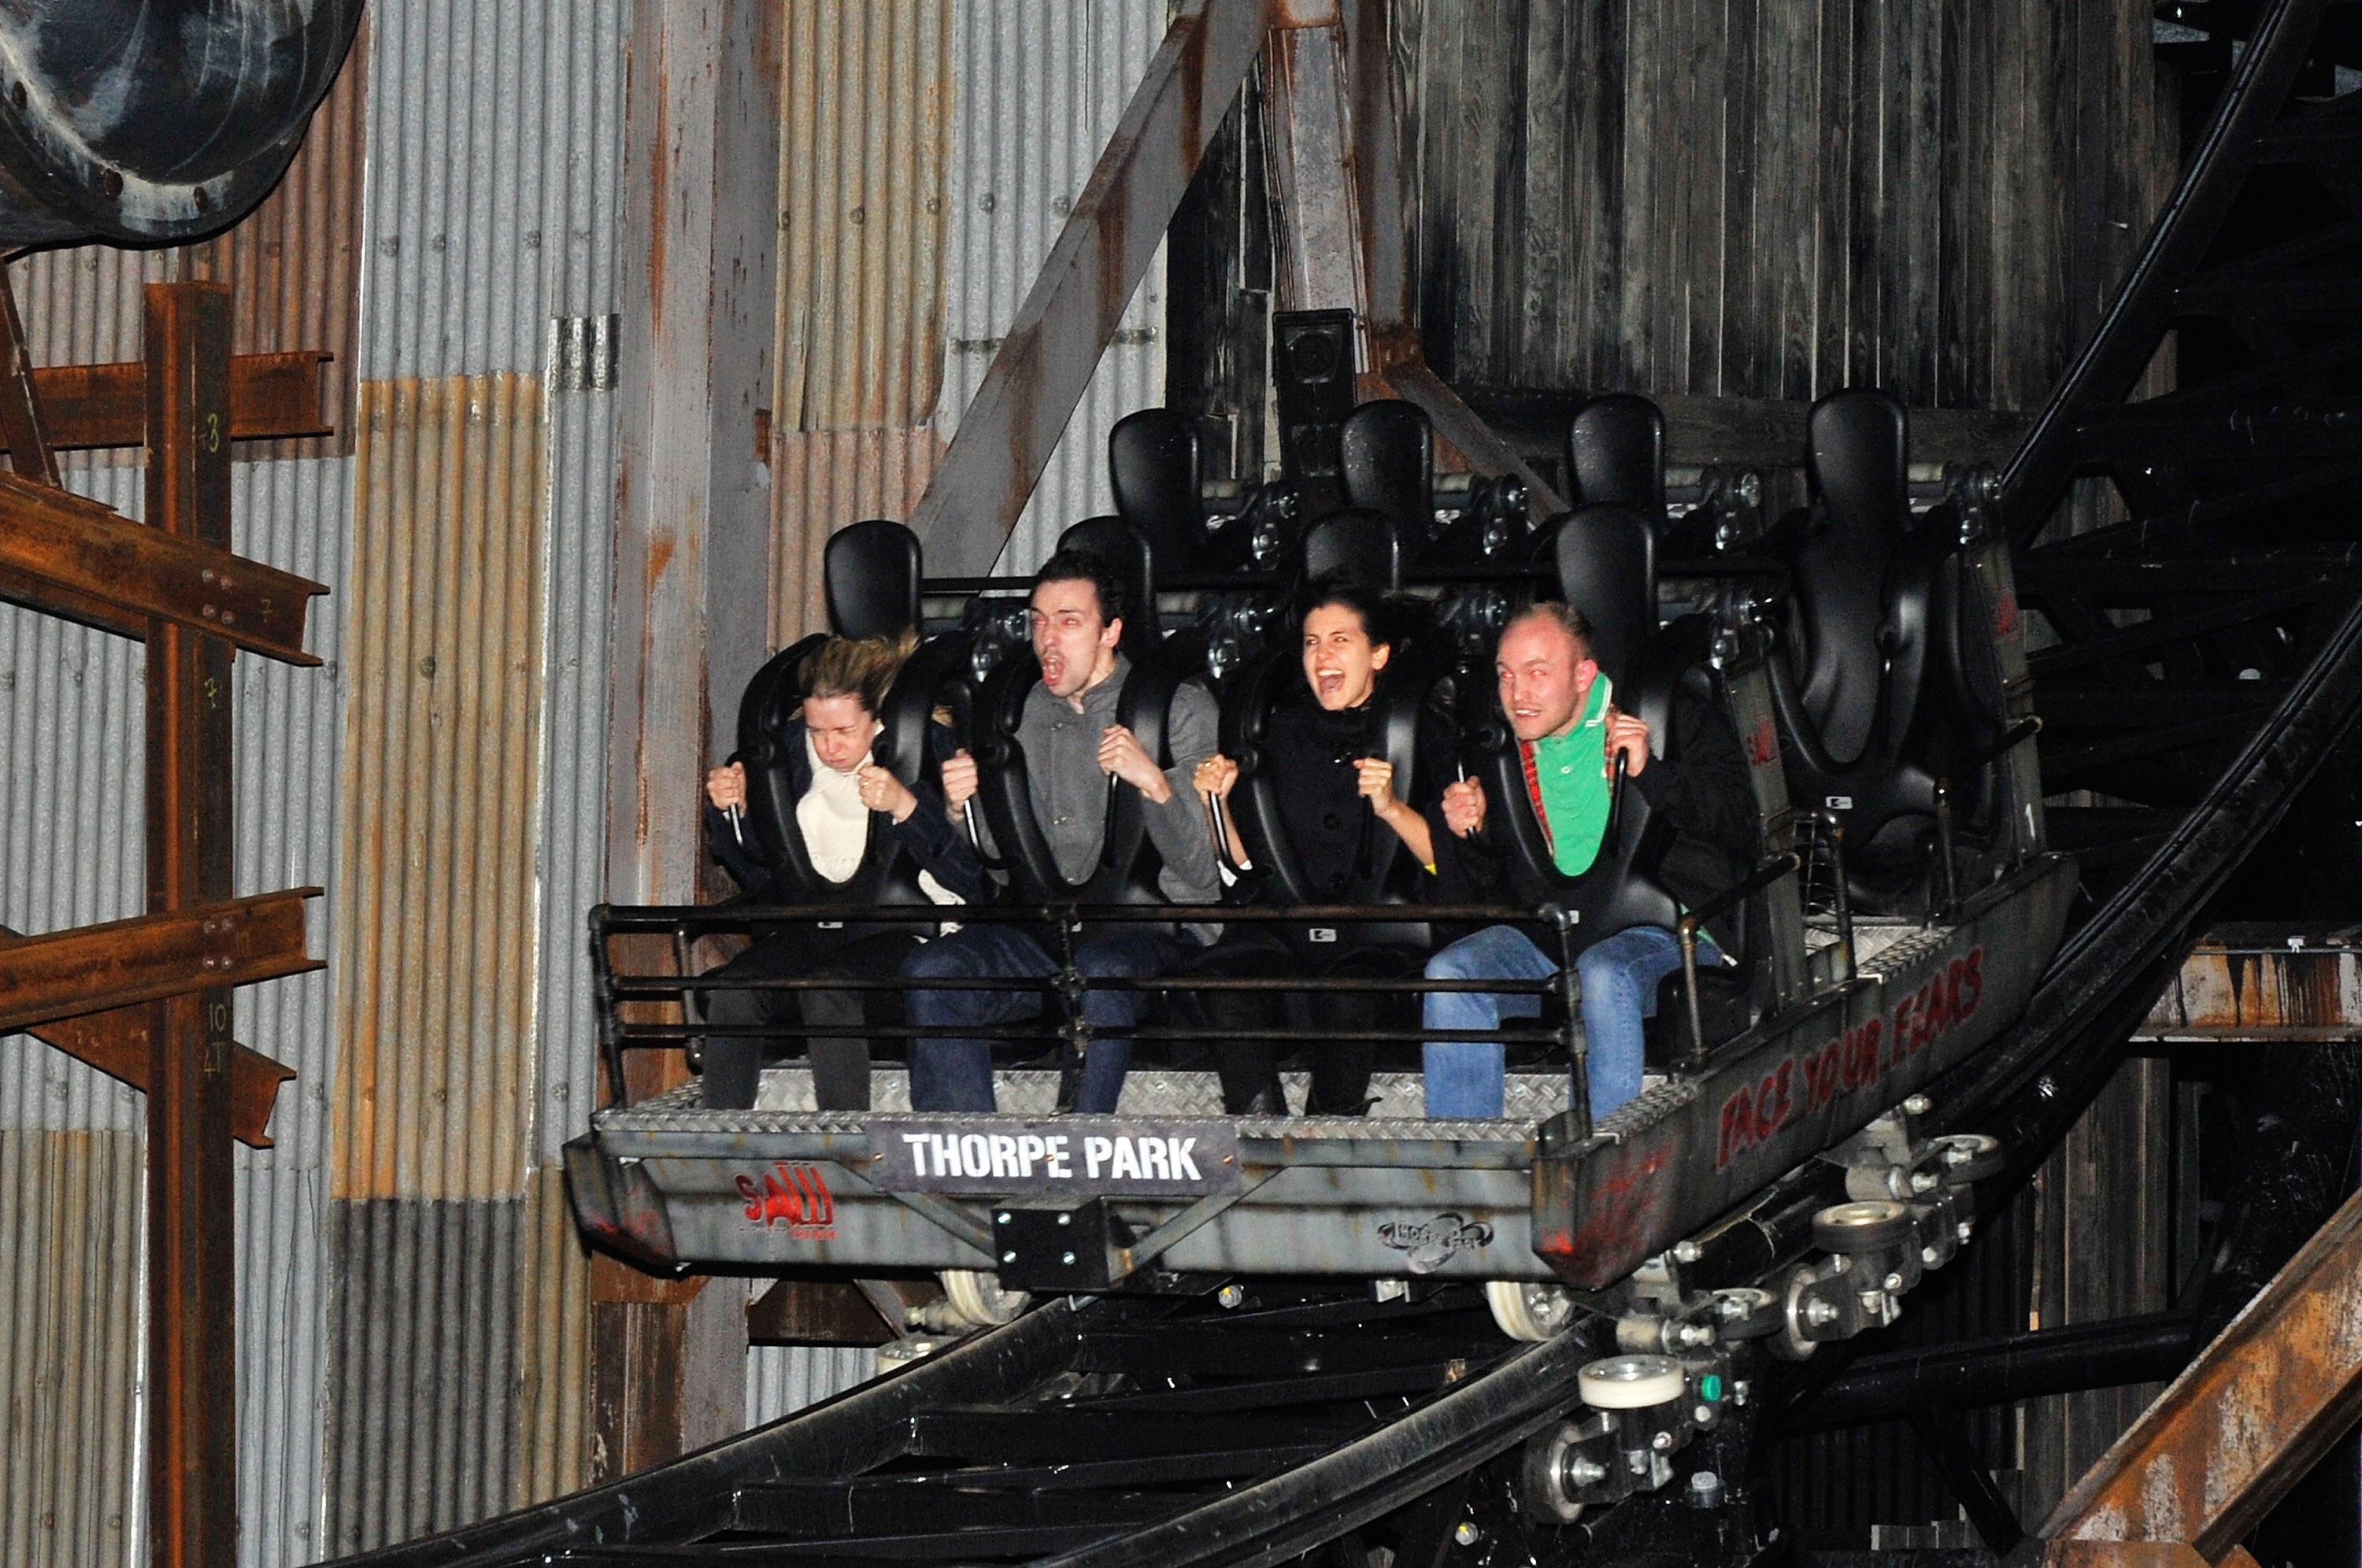 When does Thorpe Park close in winter 2018?